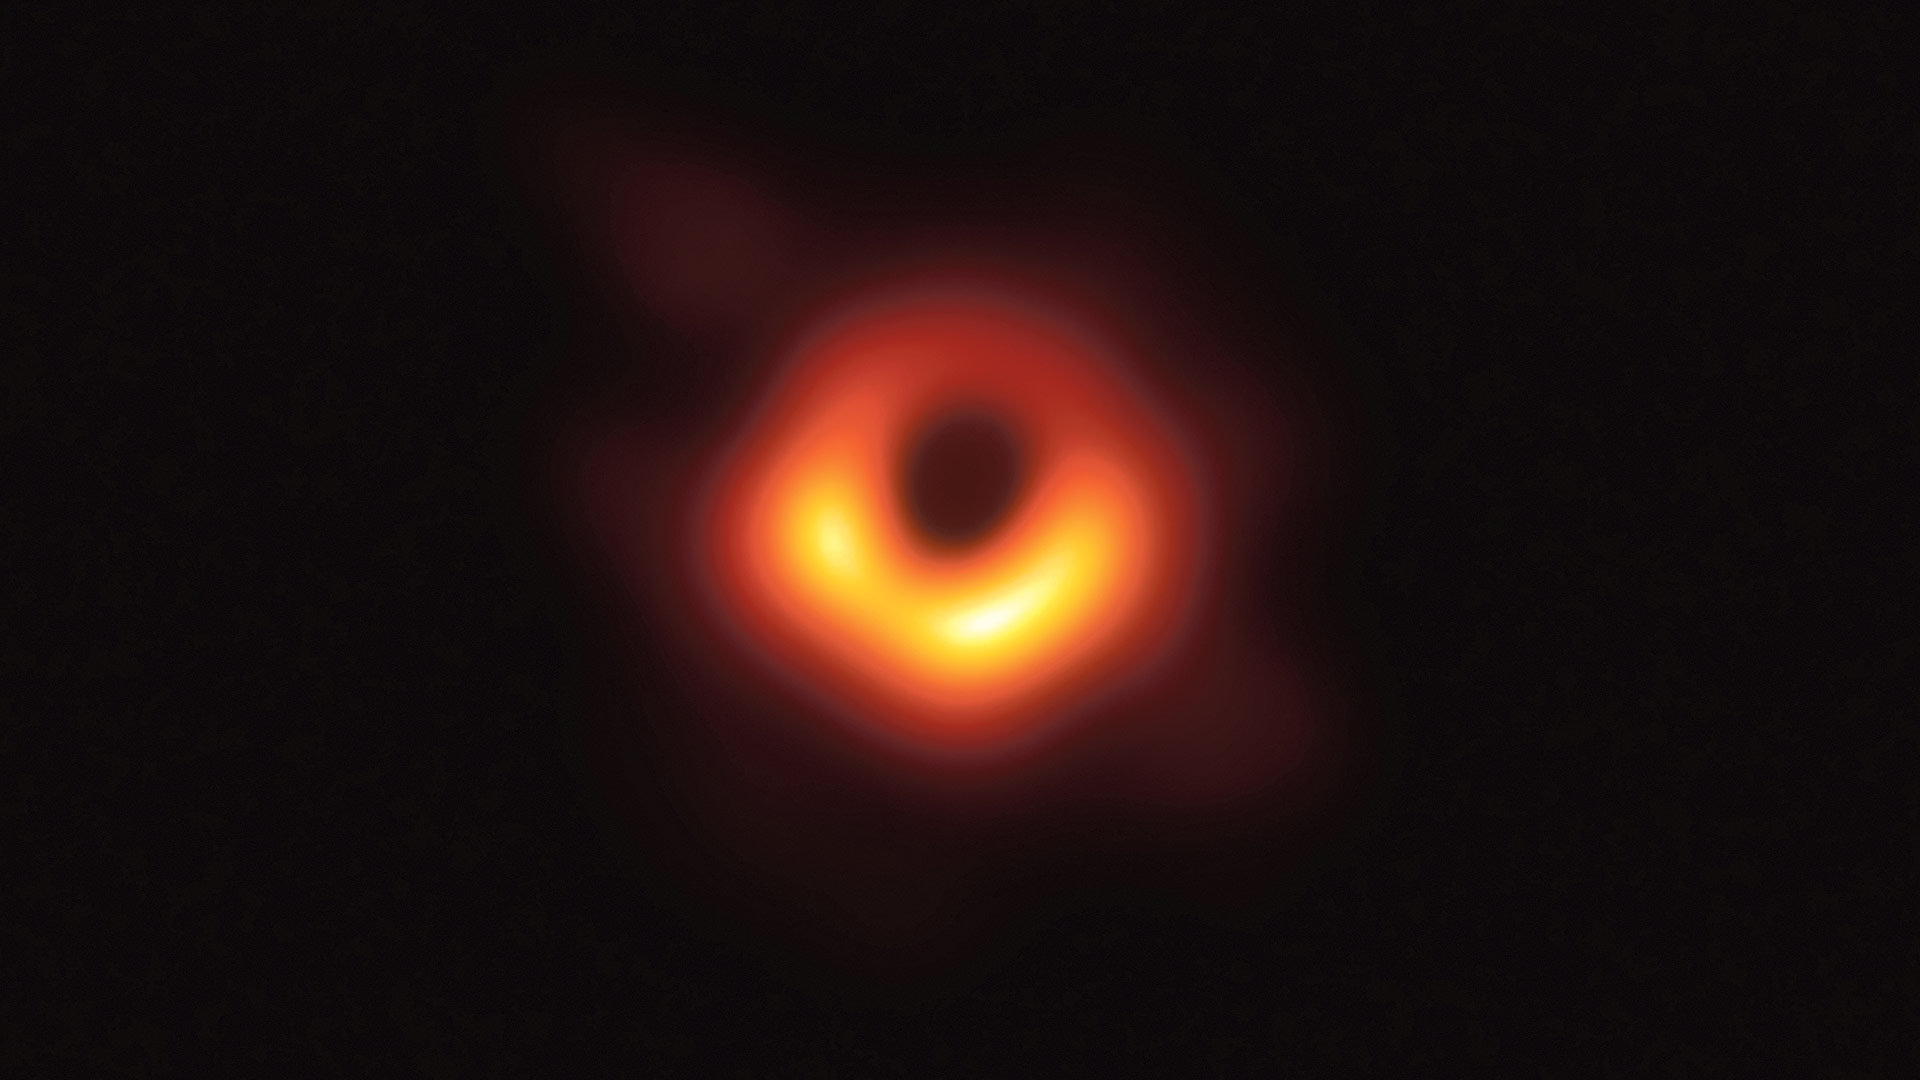 A high-resolution image of the black hole at the center of the galaxy known as M87.